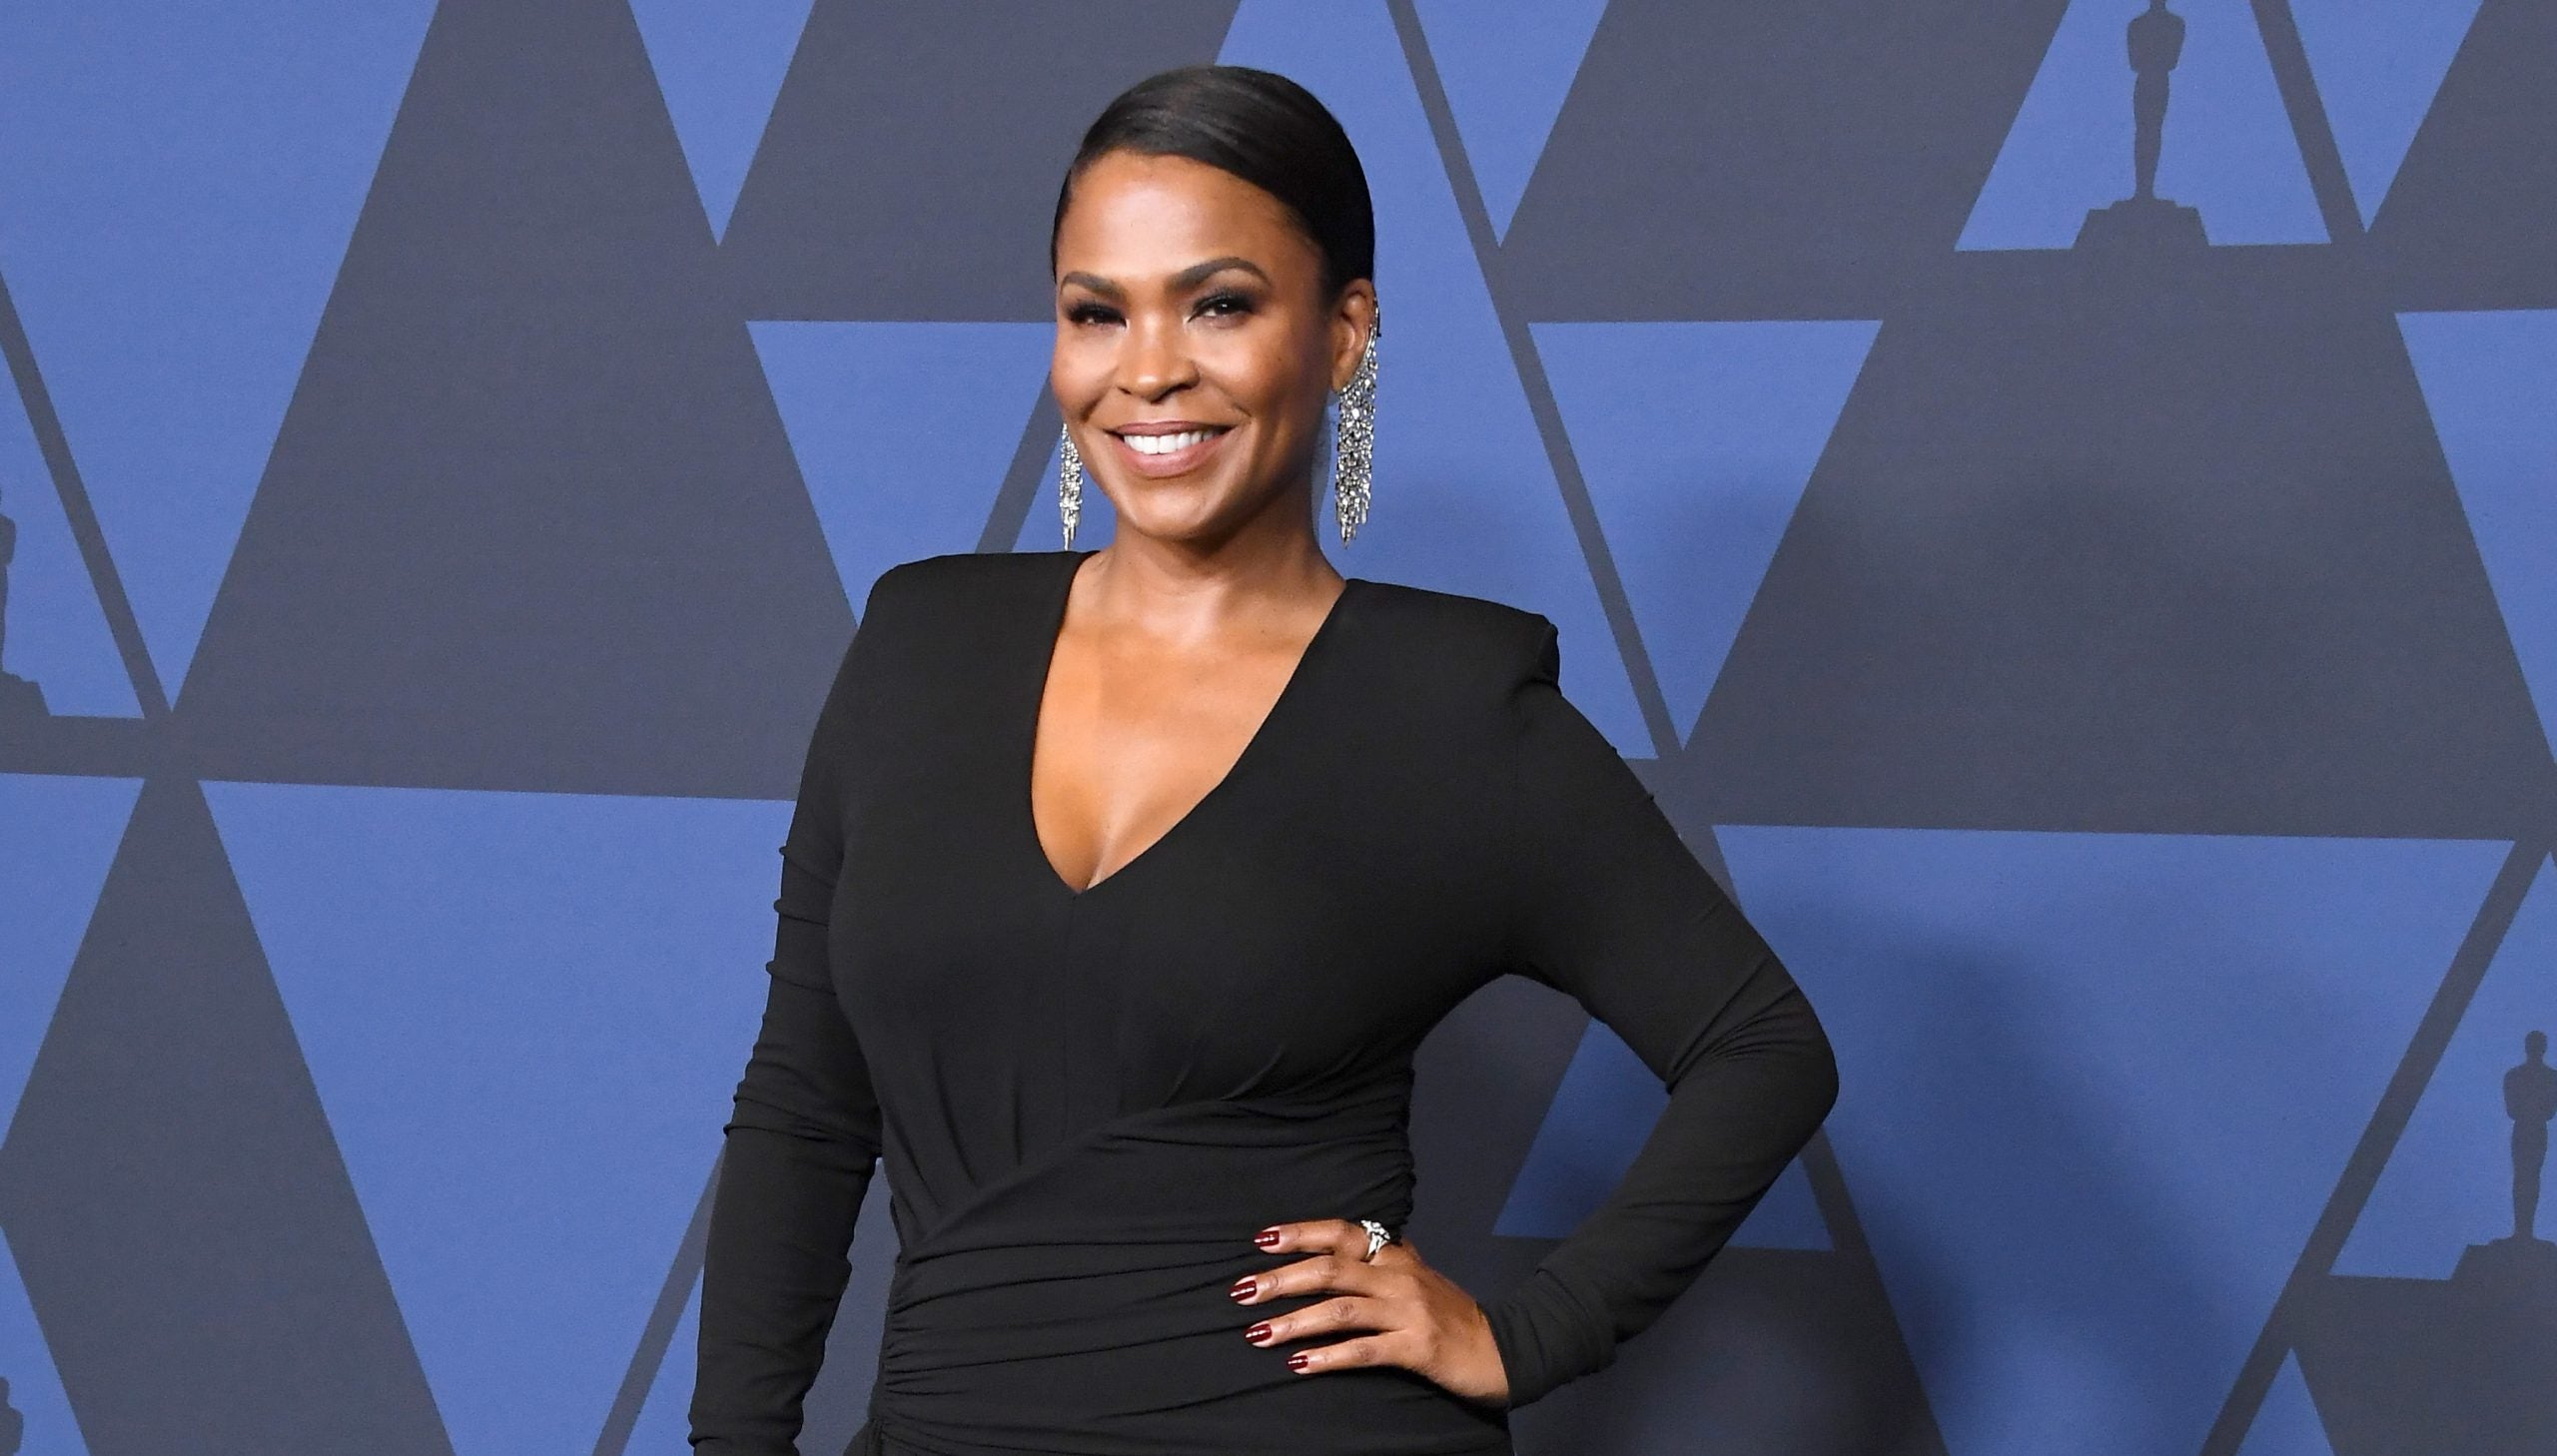 Nia Long Reveals The Wellness Secret To Looking Youthful - Essence